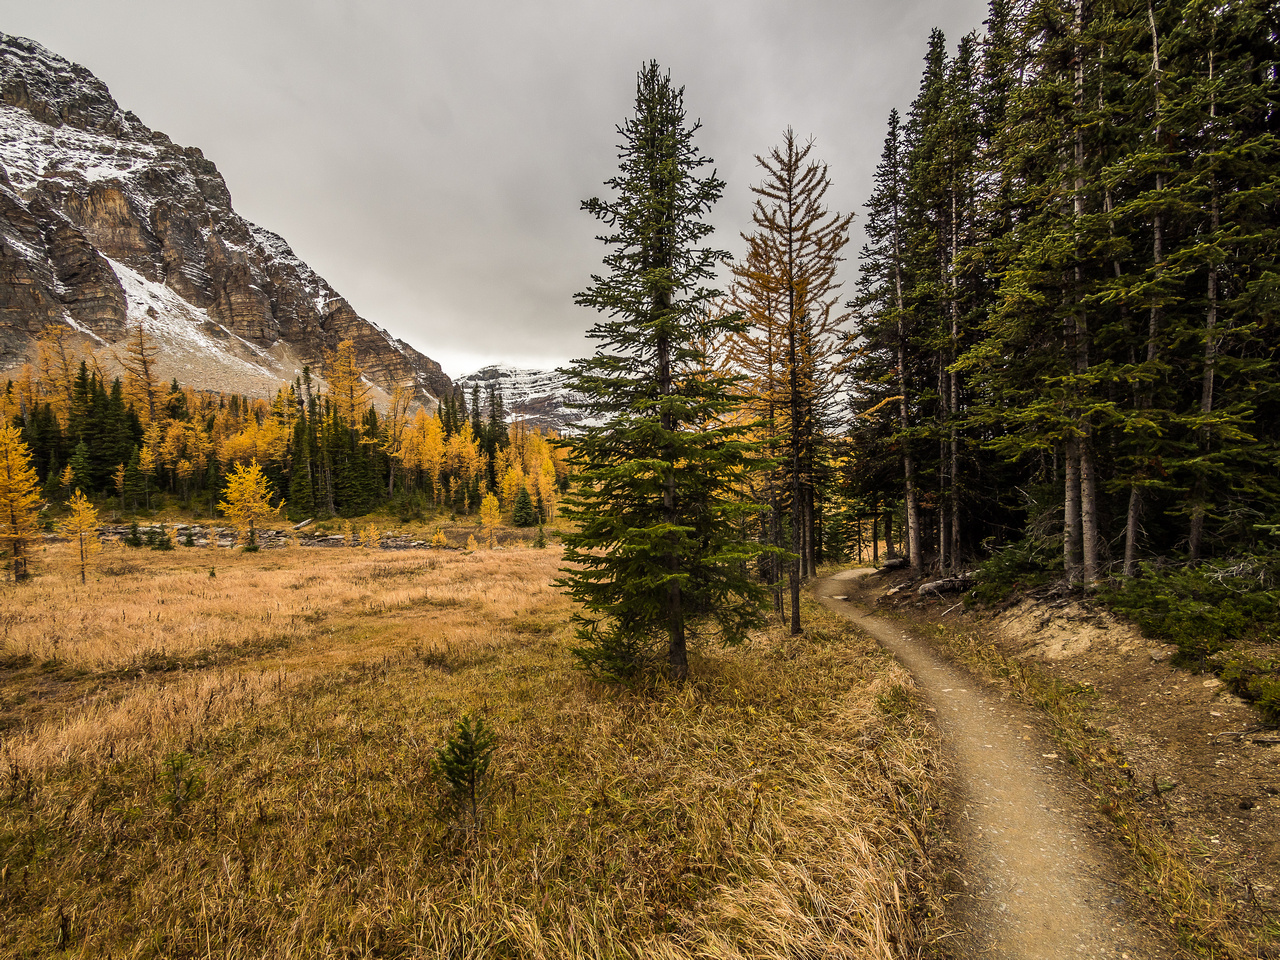 The Wonder Pass trail snakes alongside the forest as it winds its way back to Lake Magog.